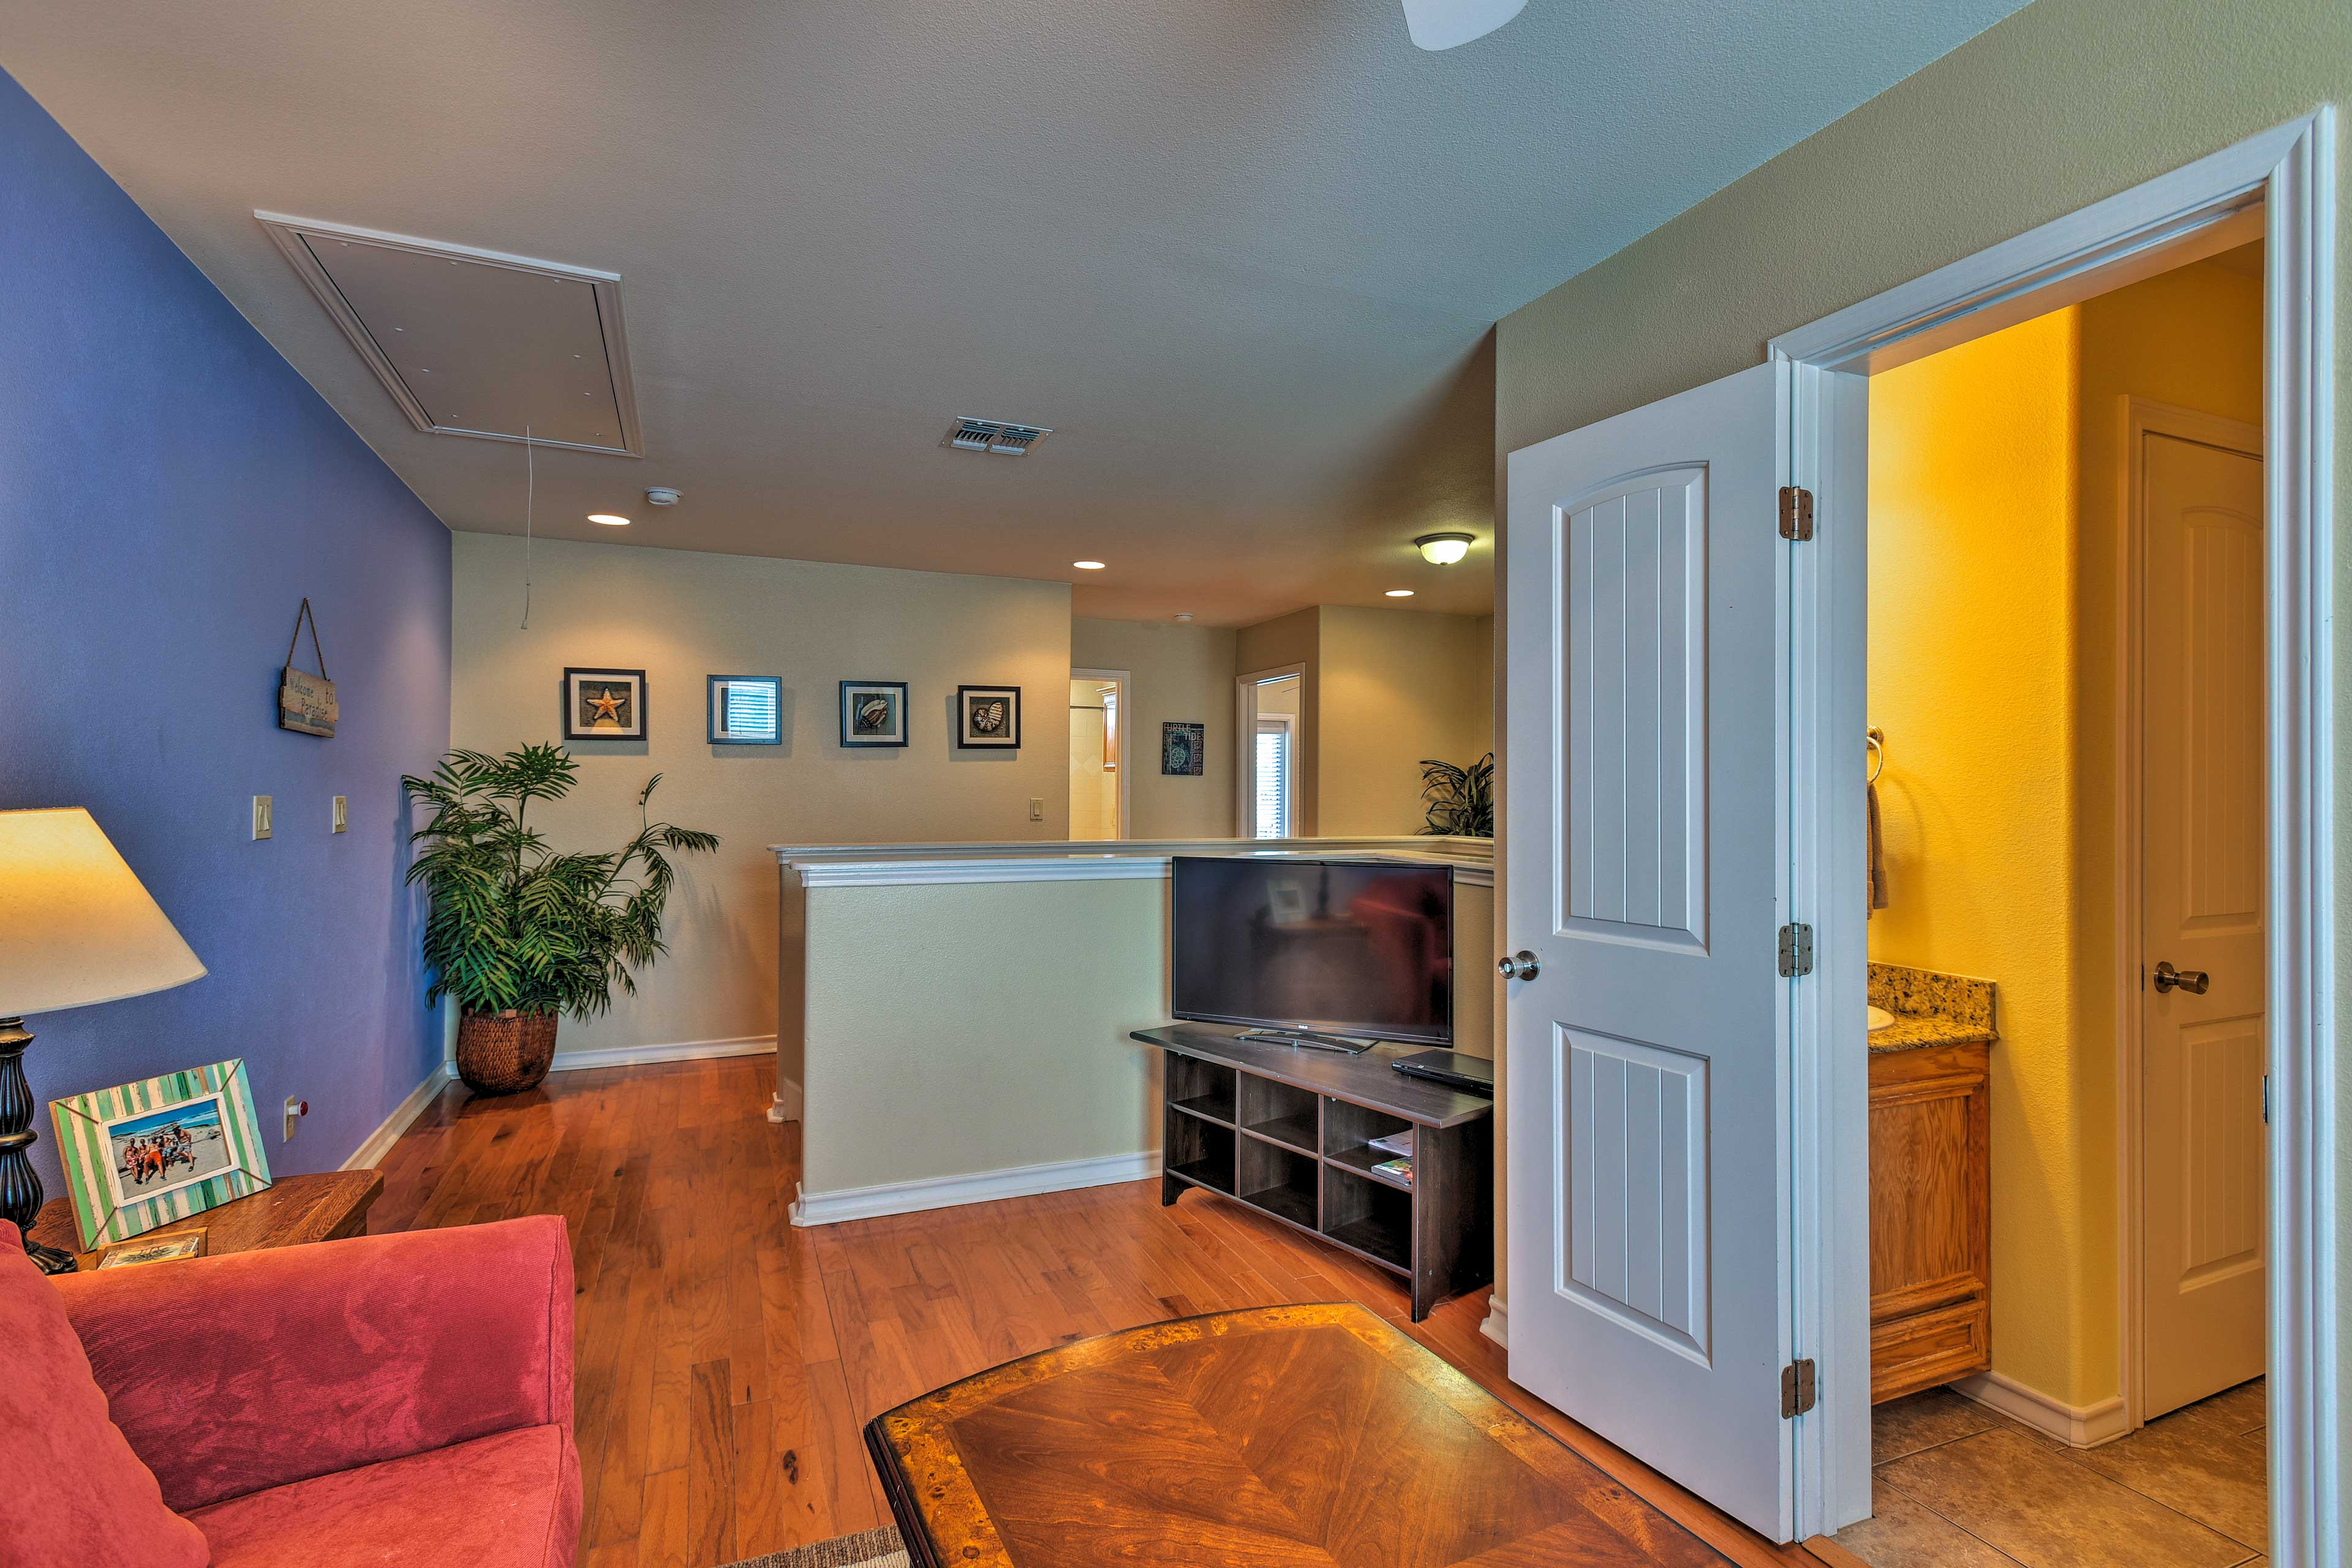 The living room and loft are equipped with flat-screen cable TVs.